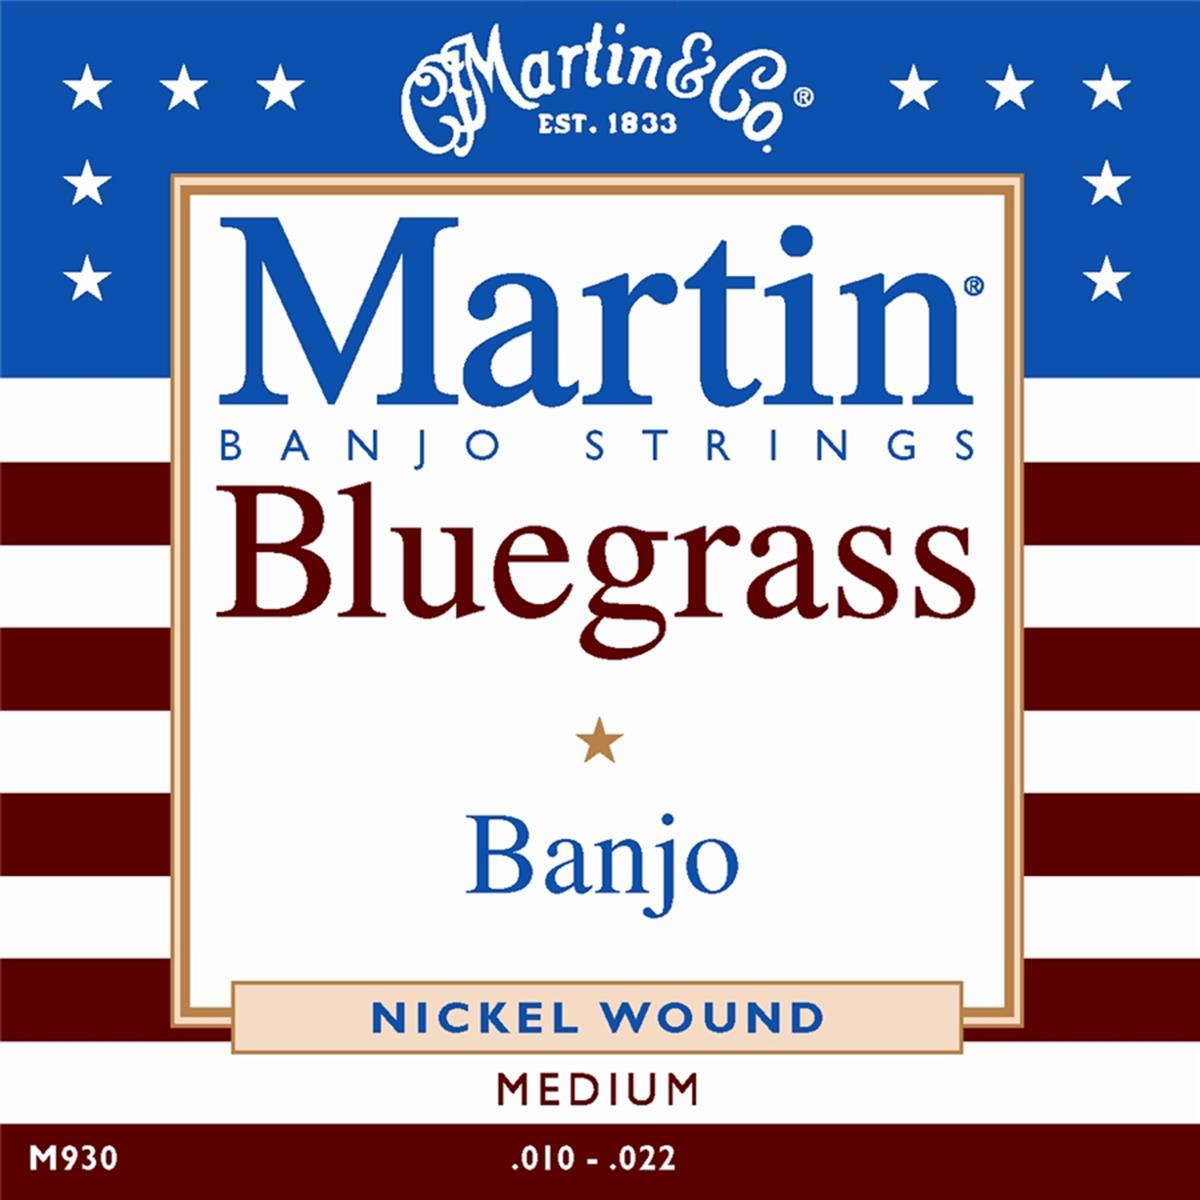 MARTIN & CO. M930 BLUEGRASS BANJO 10-22 MUTA